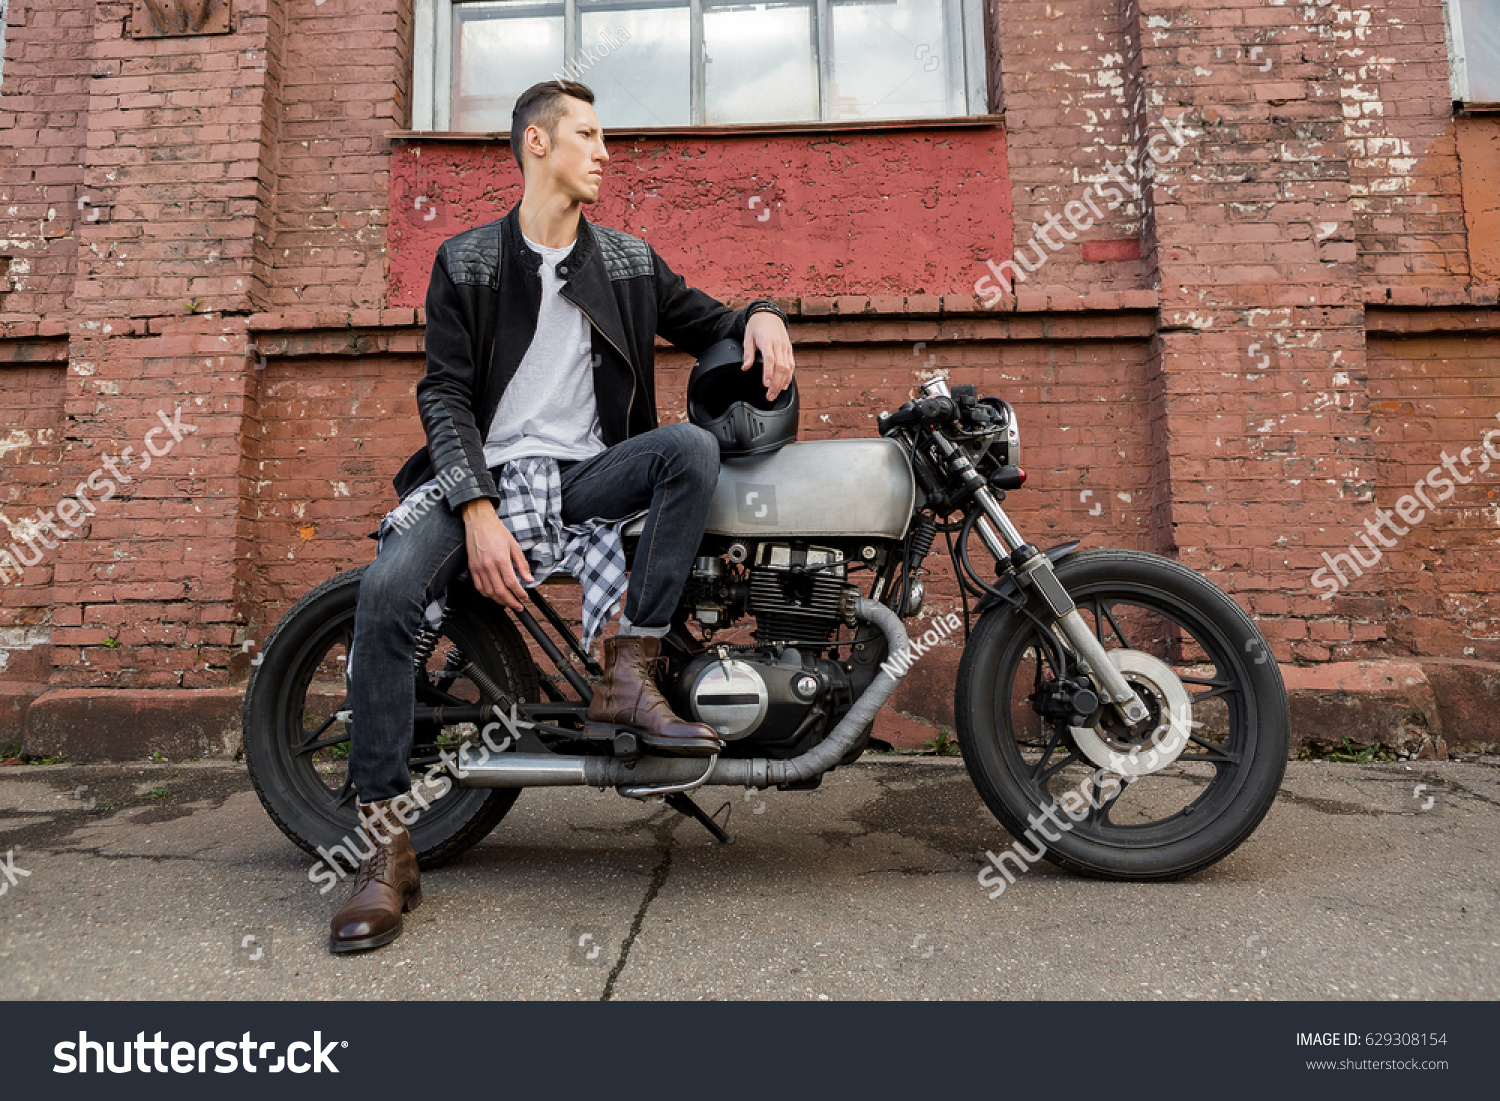 89b9df30 Handsome rider biker man in black leather jacket, jeans, boots and helmet  sit on